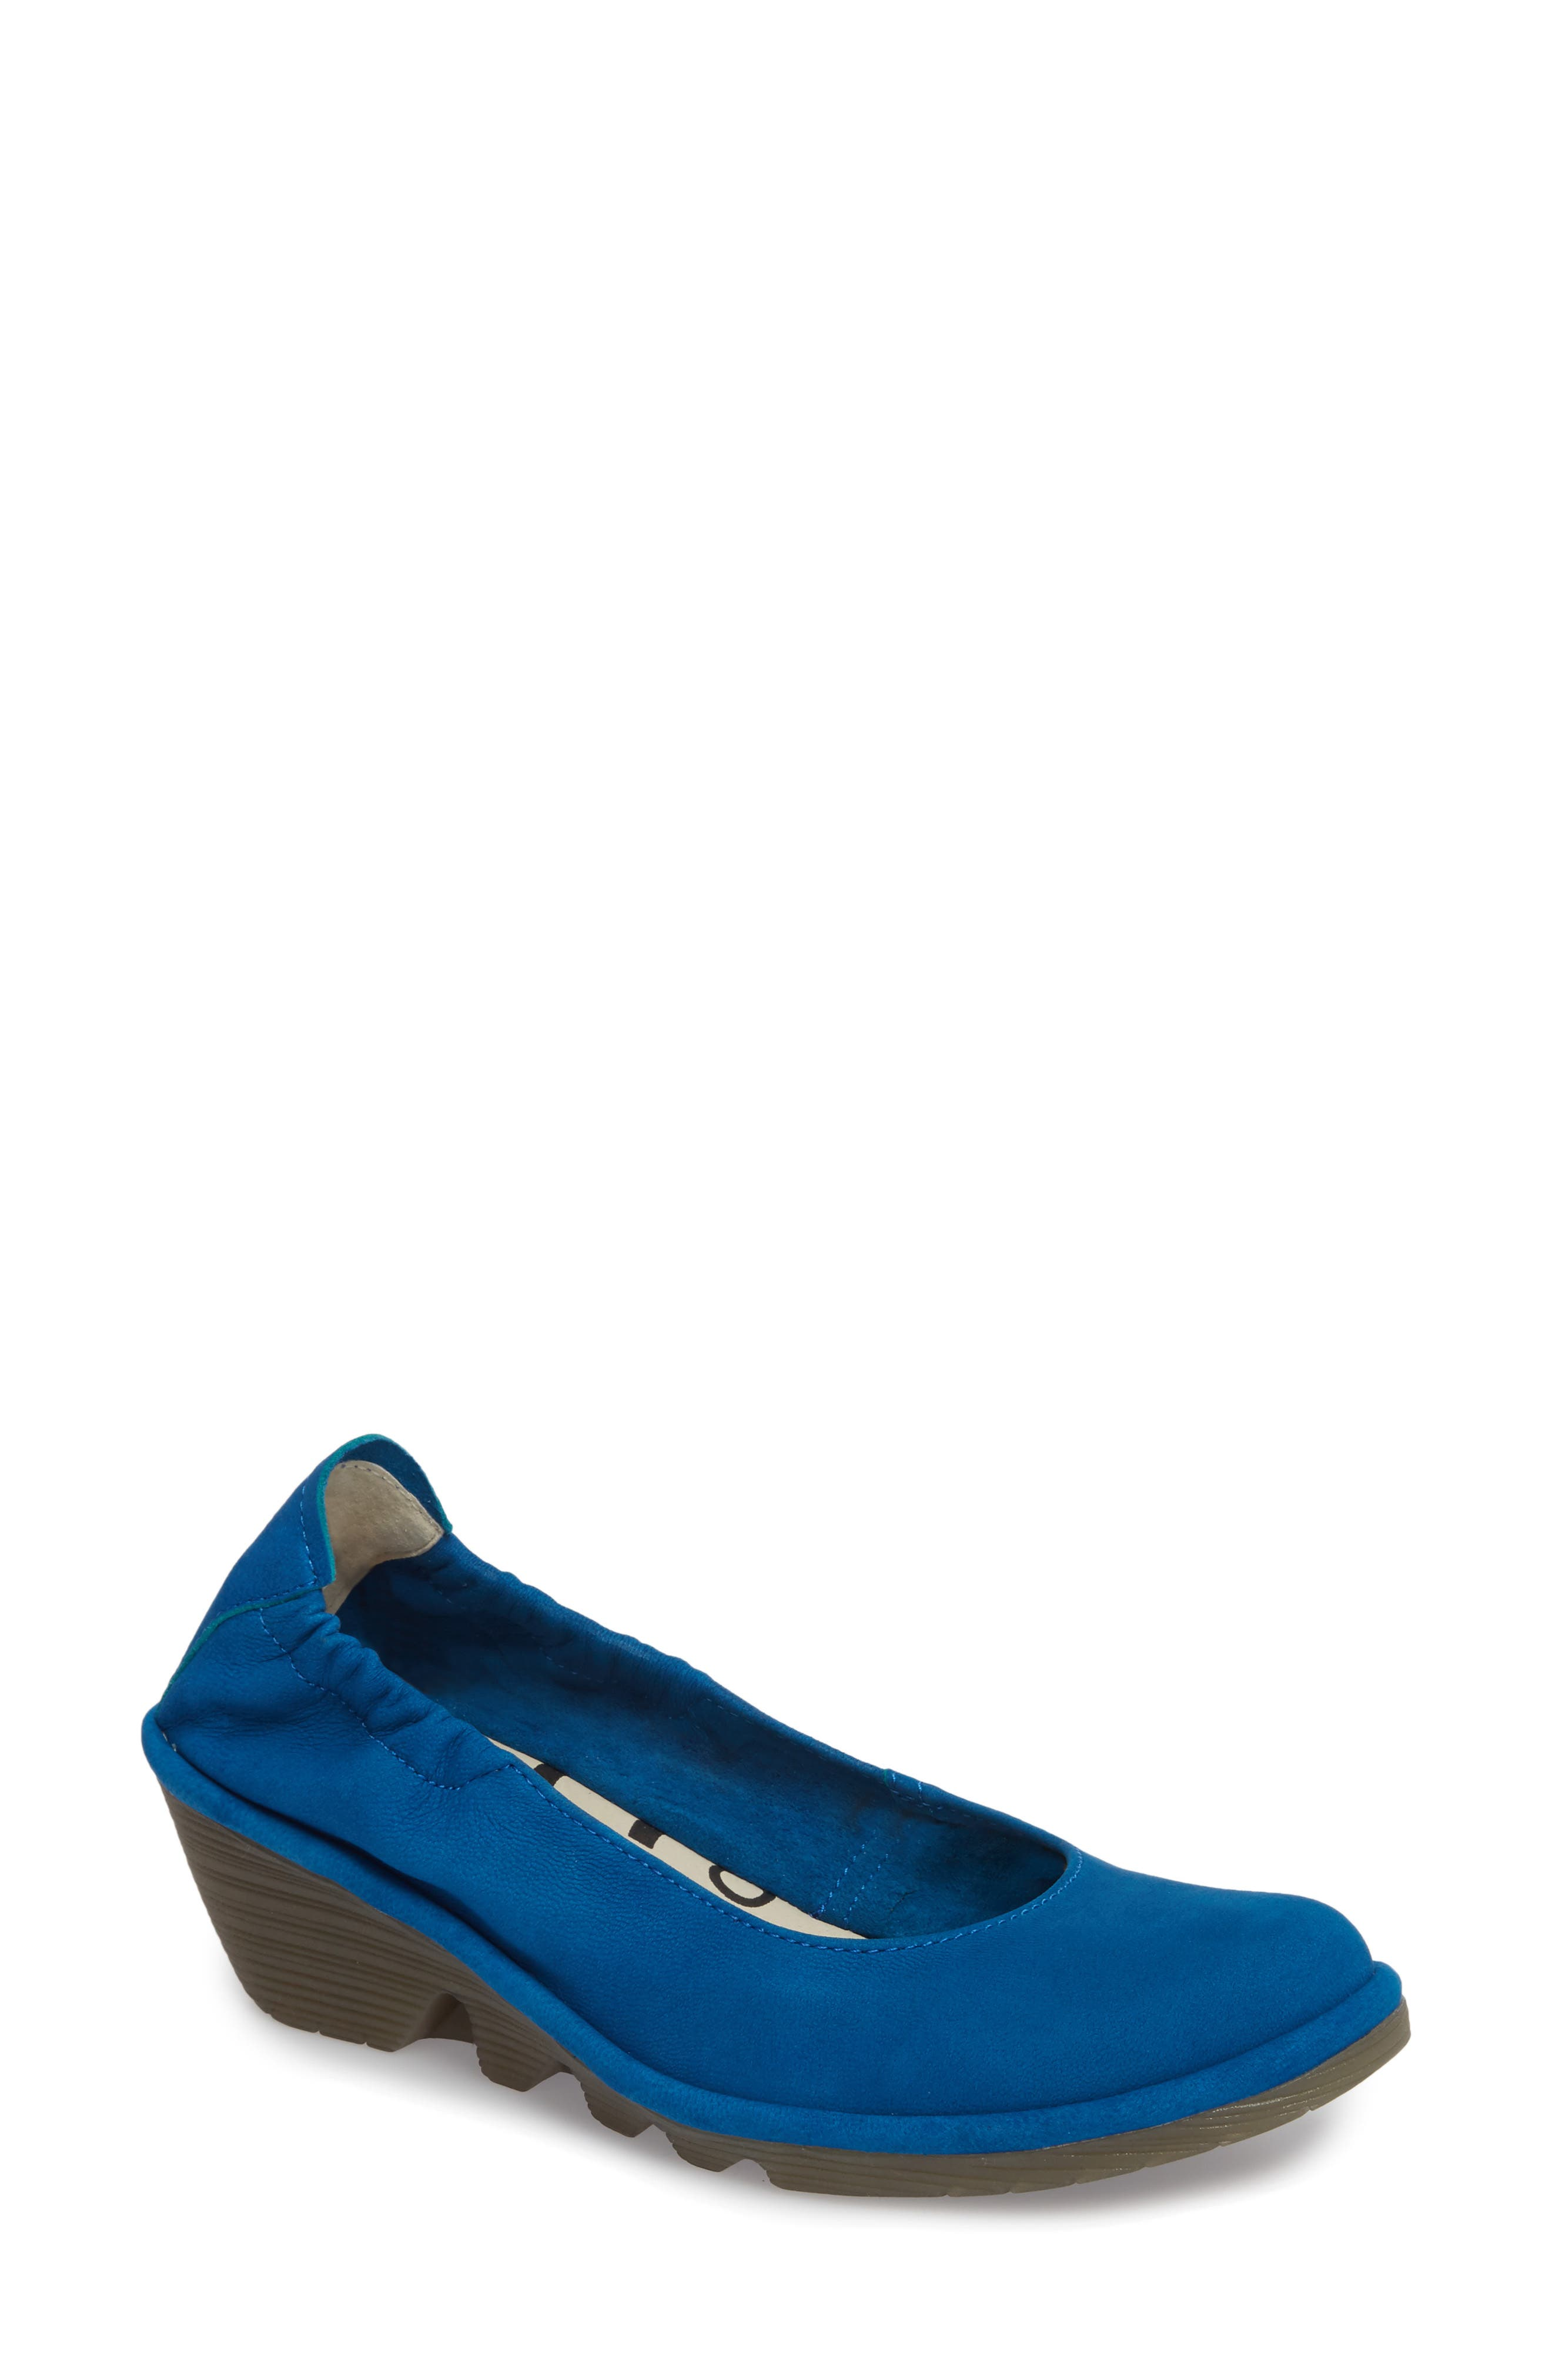 Pled Wedge,                         Main,                         color, ELECTRIC BLUE CUPIDO LEATHER